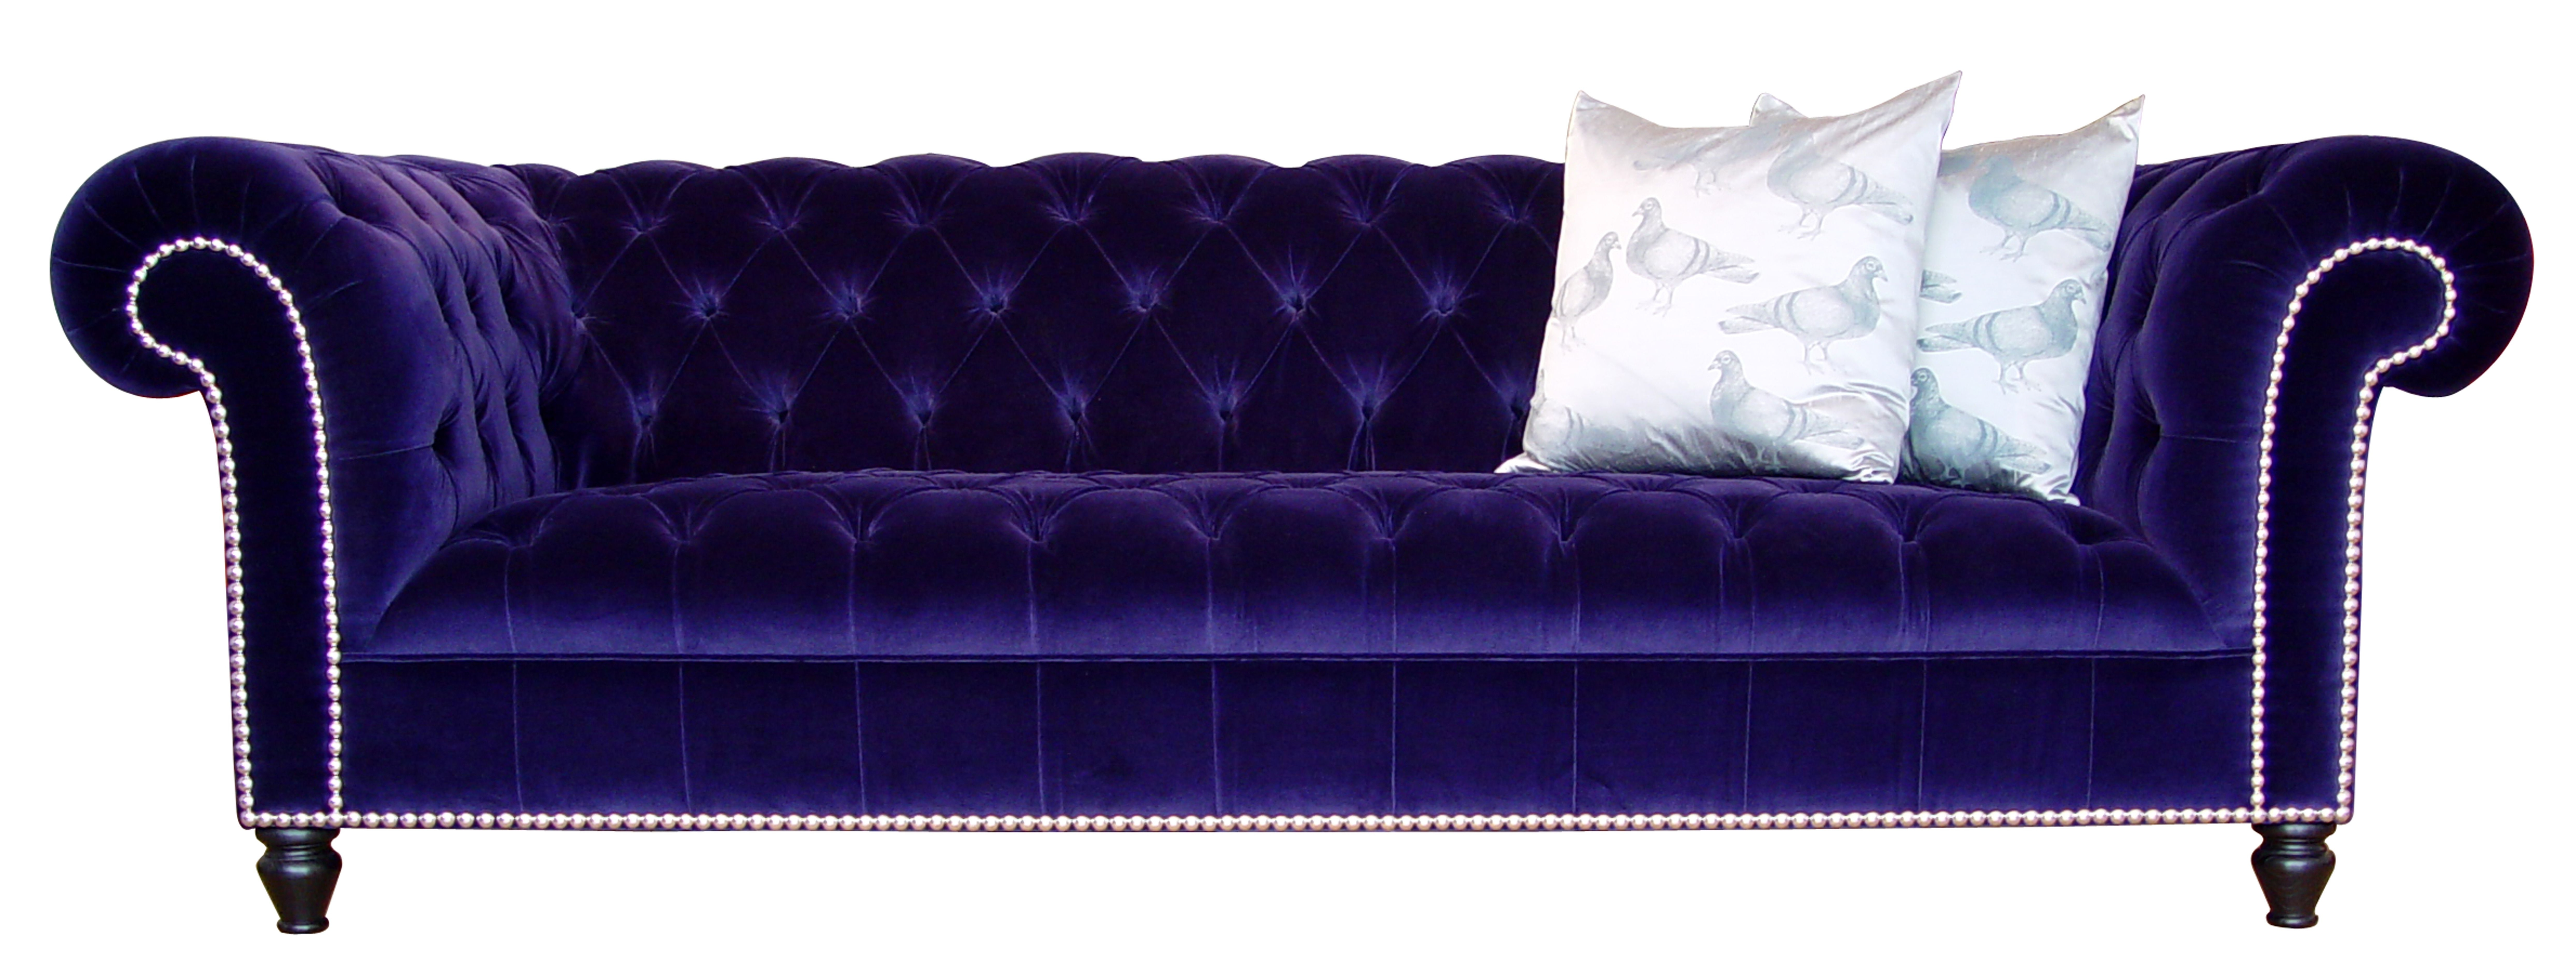 Velvet Purple Sofas intended for Current Design Classics #20: The Chesterfield Sofa